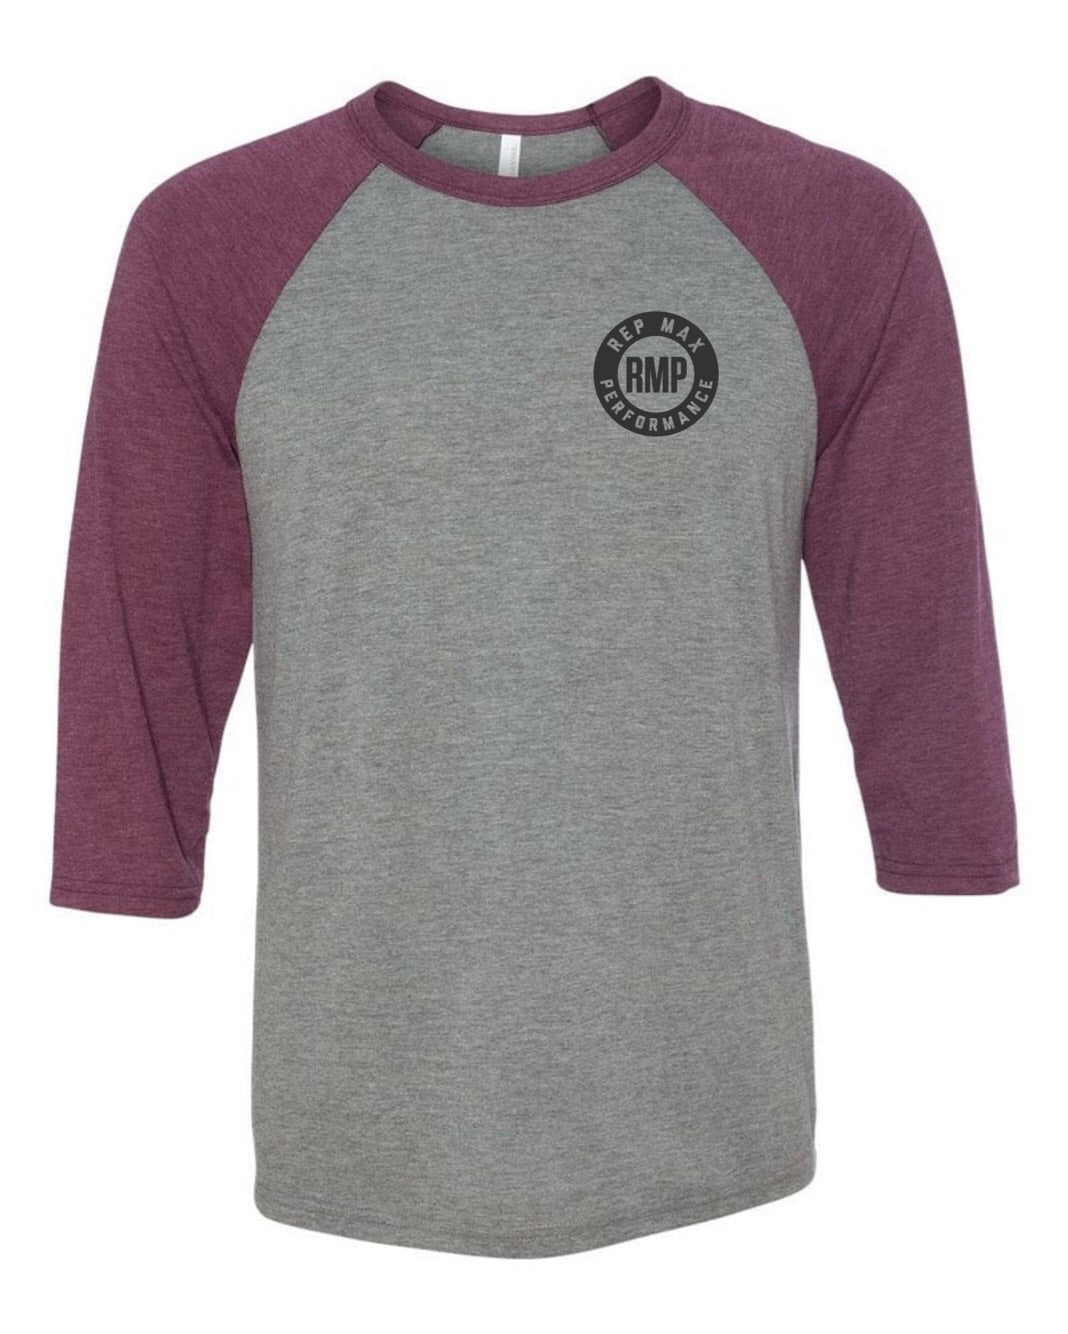 Weightlifter Baseball Tee (gray/maroon)